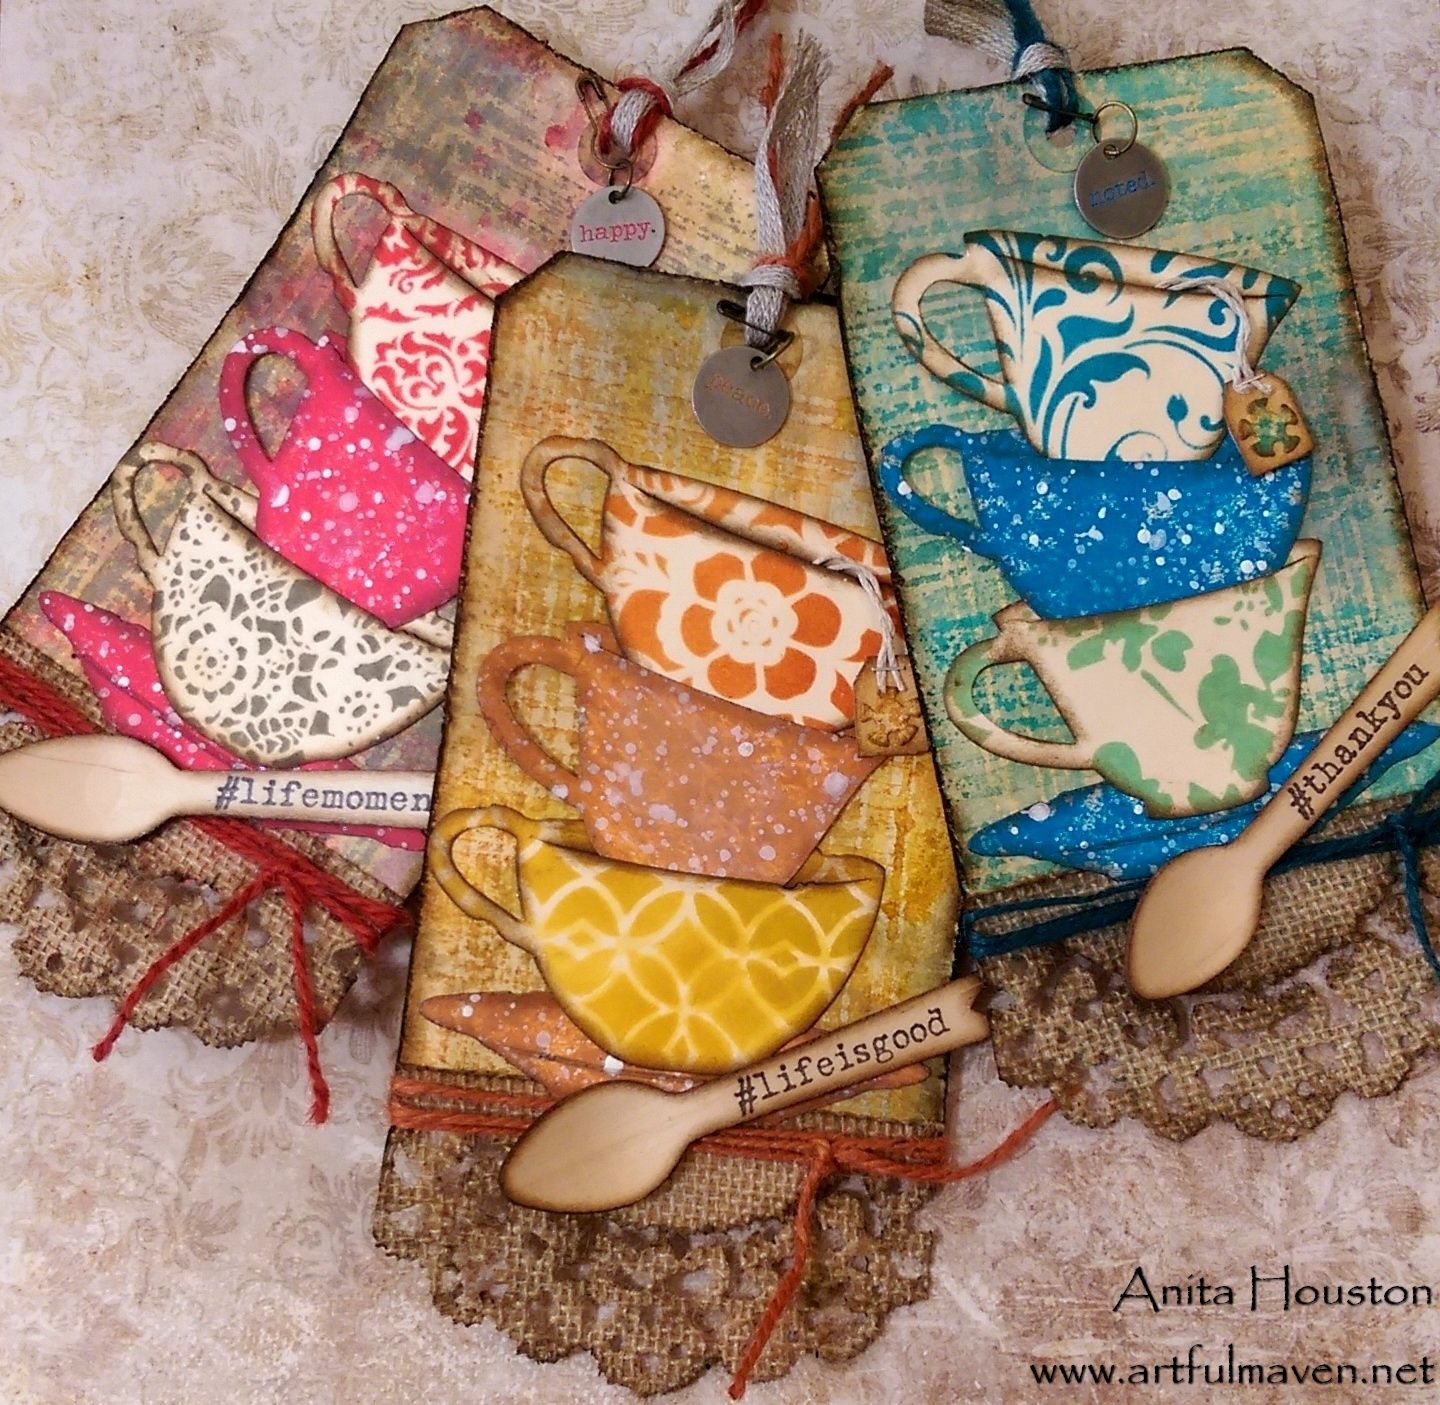 The Artful Maven Haven: 12 Tags of 2015 - June#comment-form